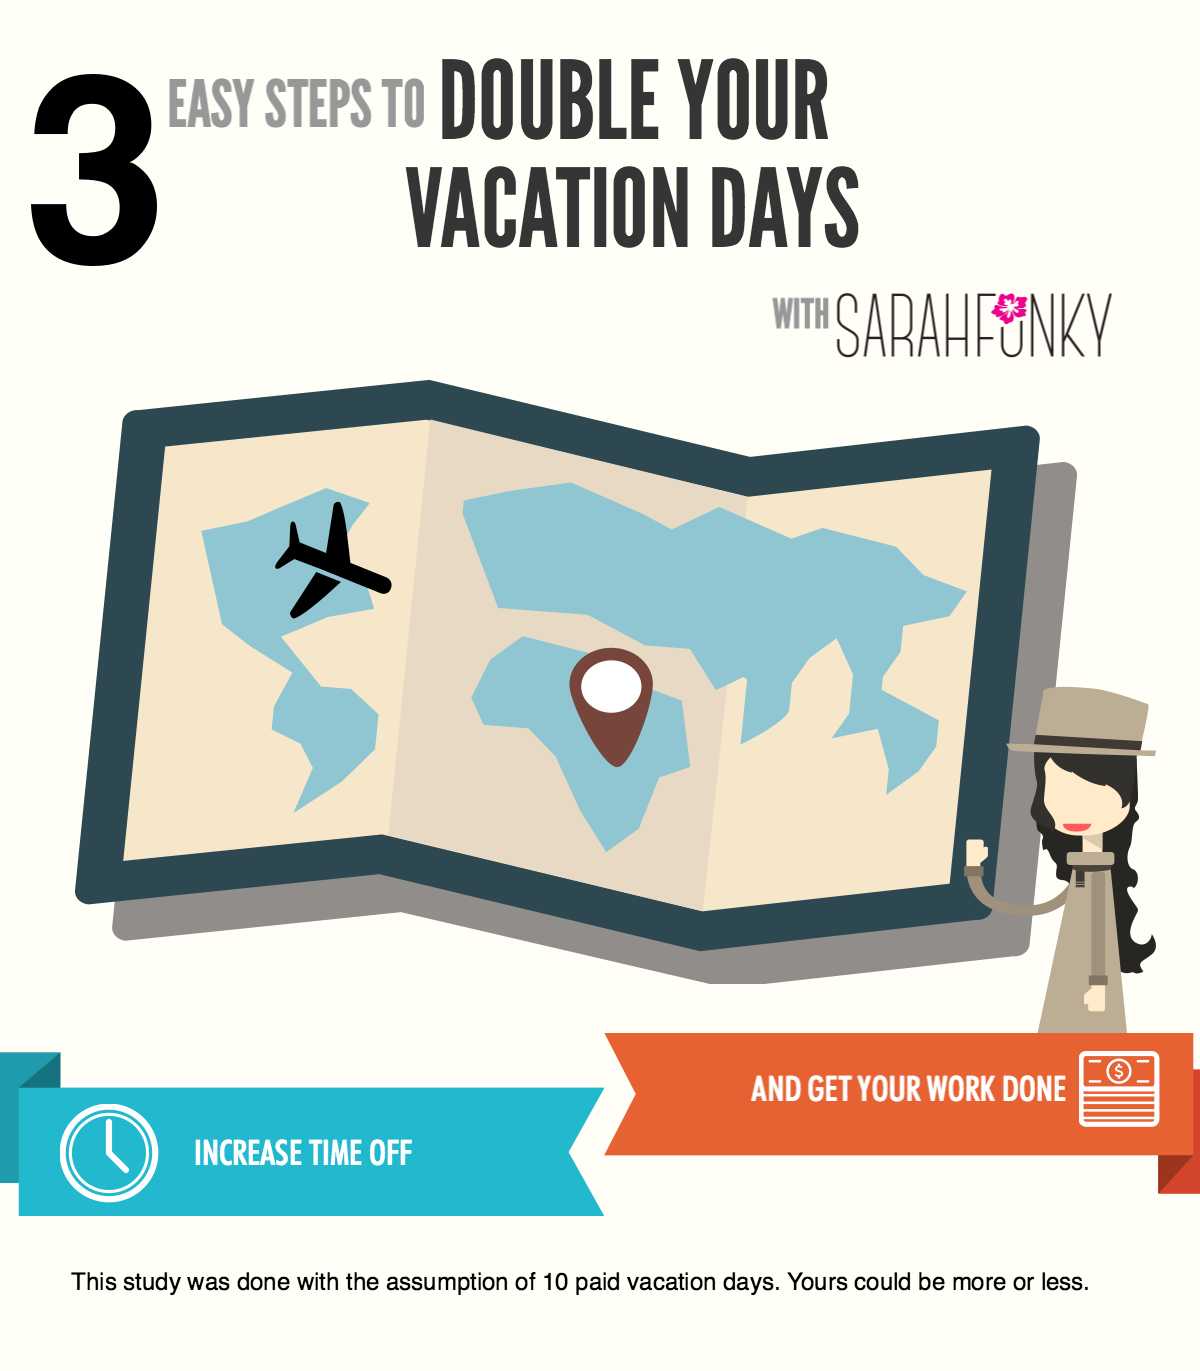 3 STEPS TO DOUBLE YOUR VACATION DAYS - INFOGRAPHIC